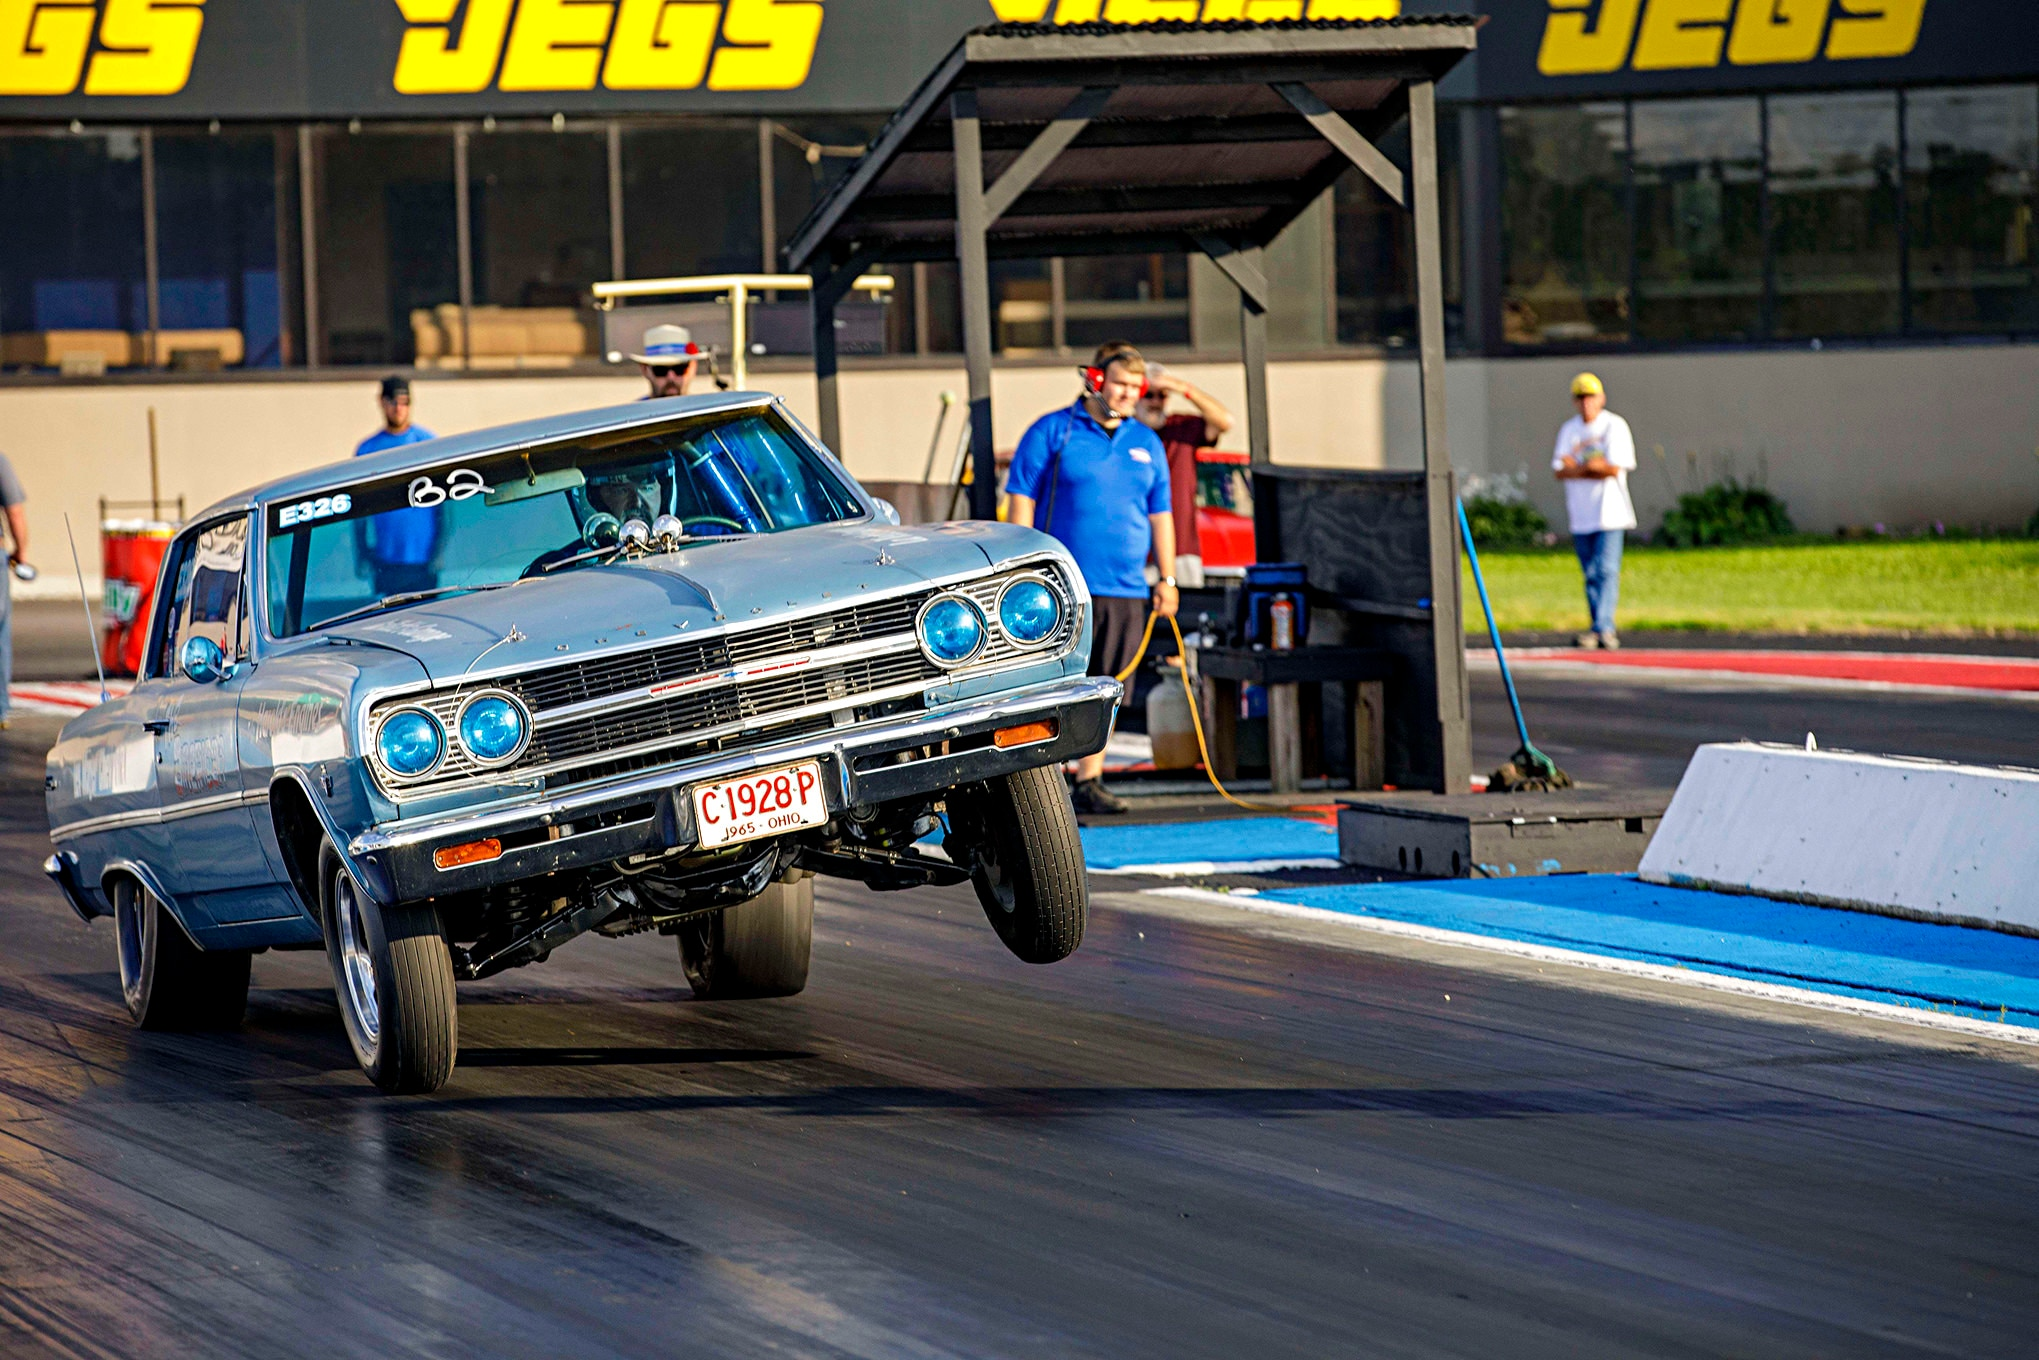 Photo Gallery! Drag racing action from day one of the 2018 Super Chevy Show in Hebron Ohio!